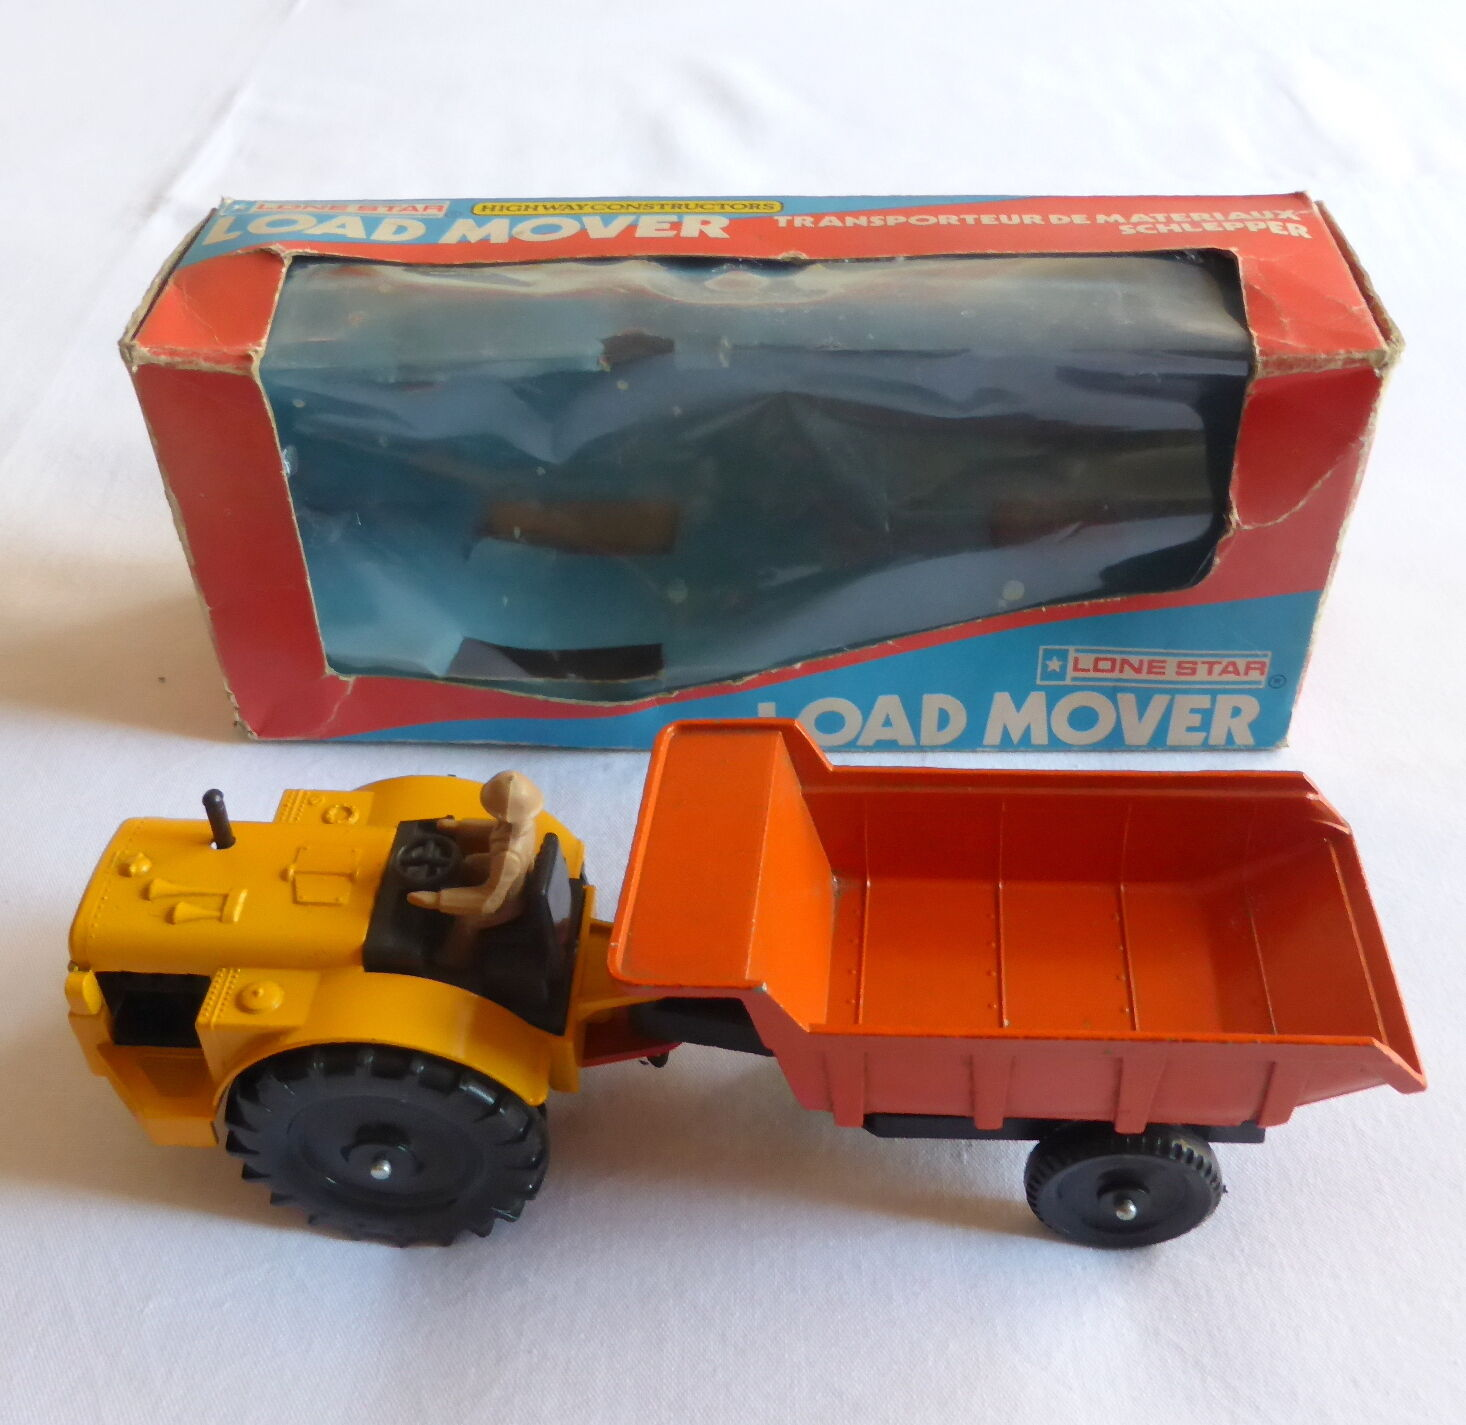 Rare LOAD MOVER diecast metal tractor and chassis LONE STAR 1977 with box